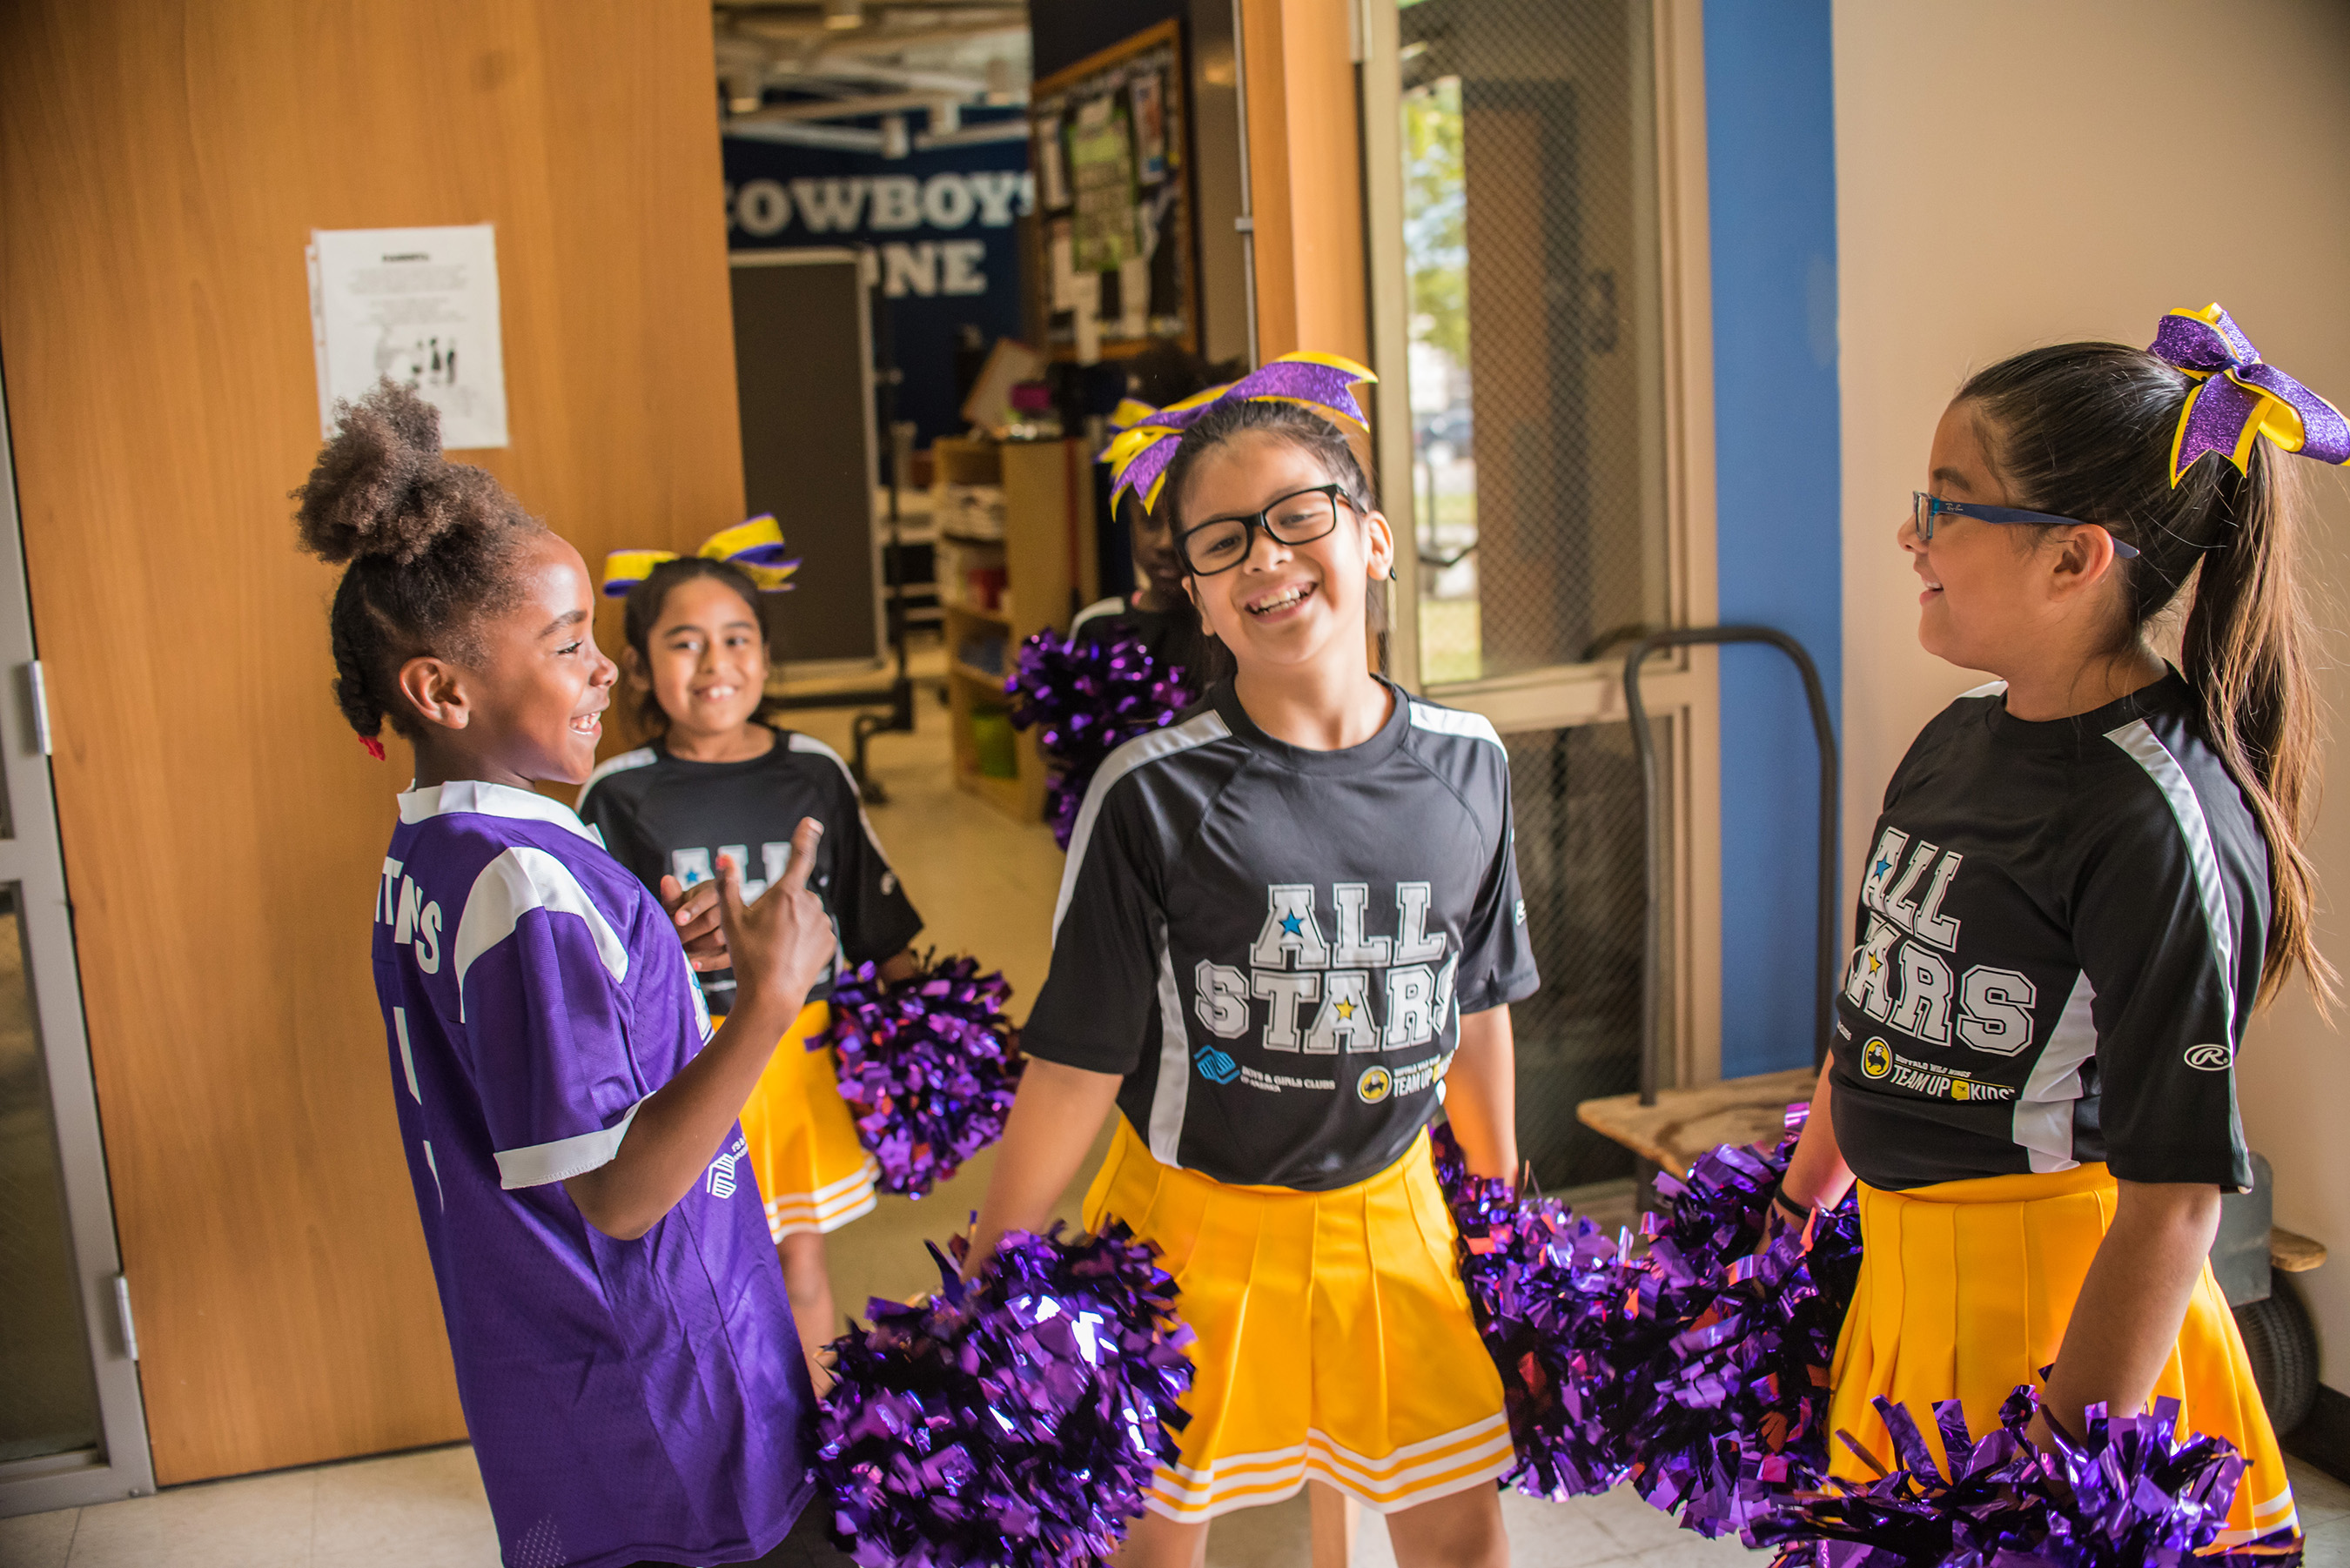 Club members involved in the ALL STARS cheer program